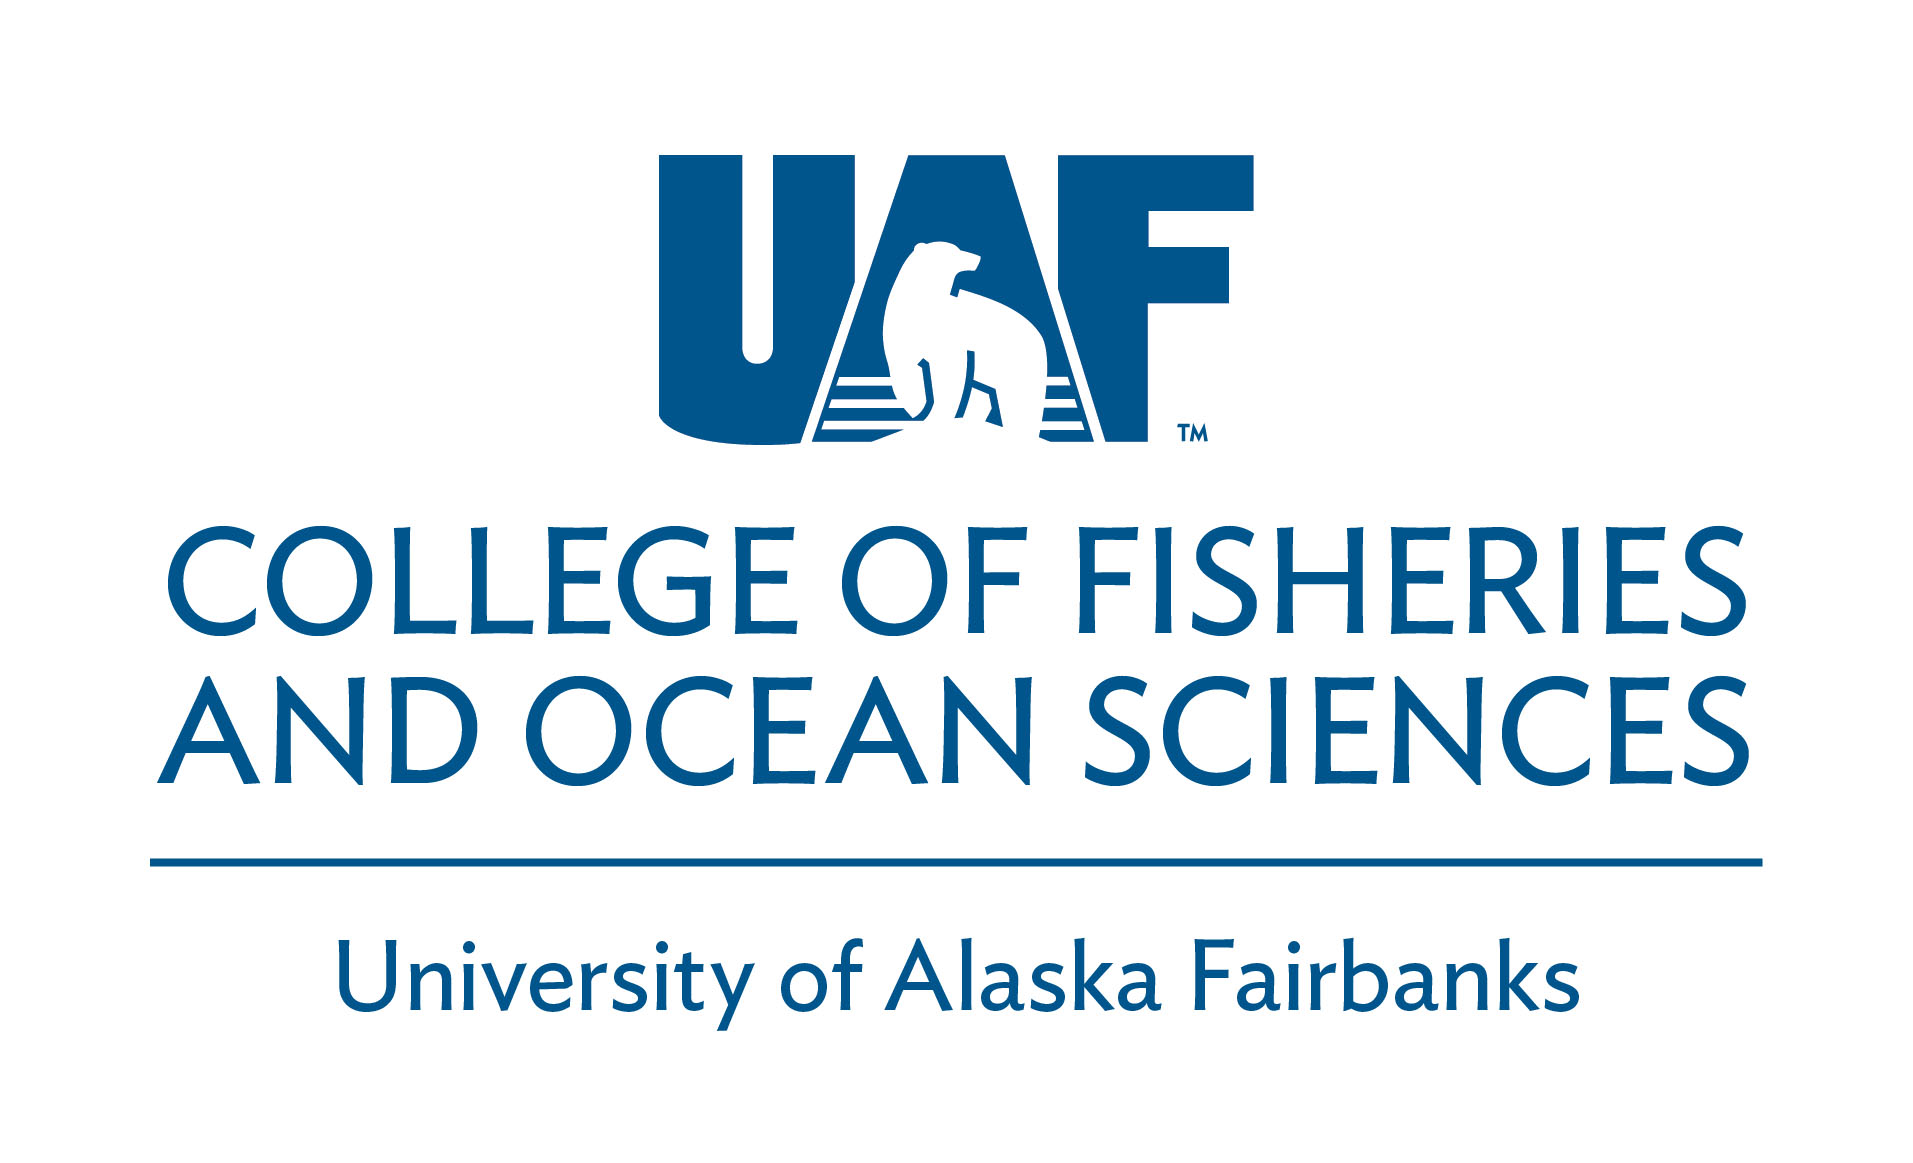 UAF College of Fisheries and Ocean Sciences - Blue Horizontal logo